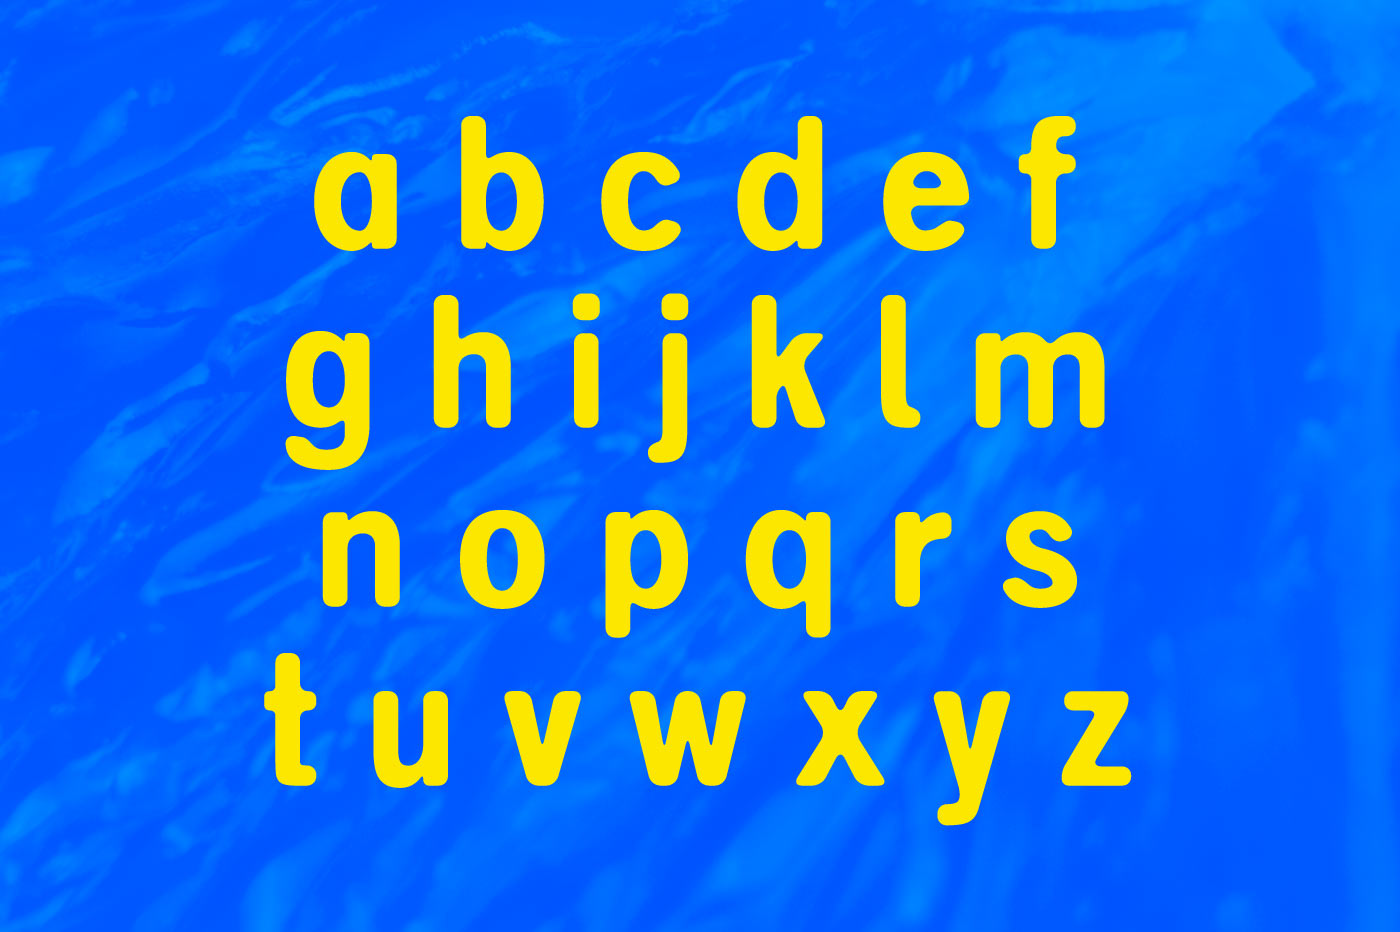 Obly Grotesk example image 3